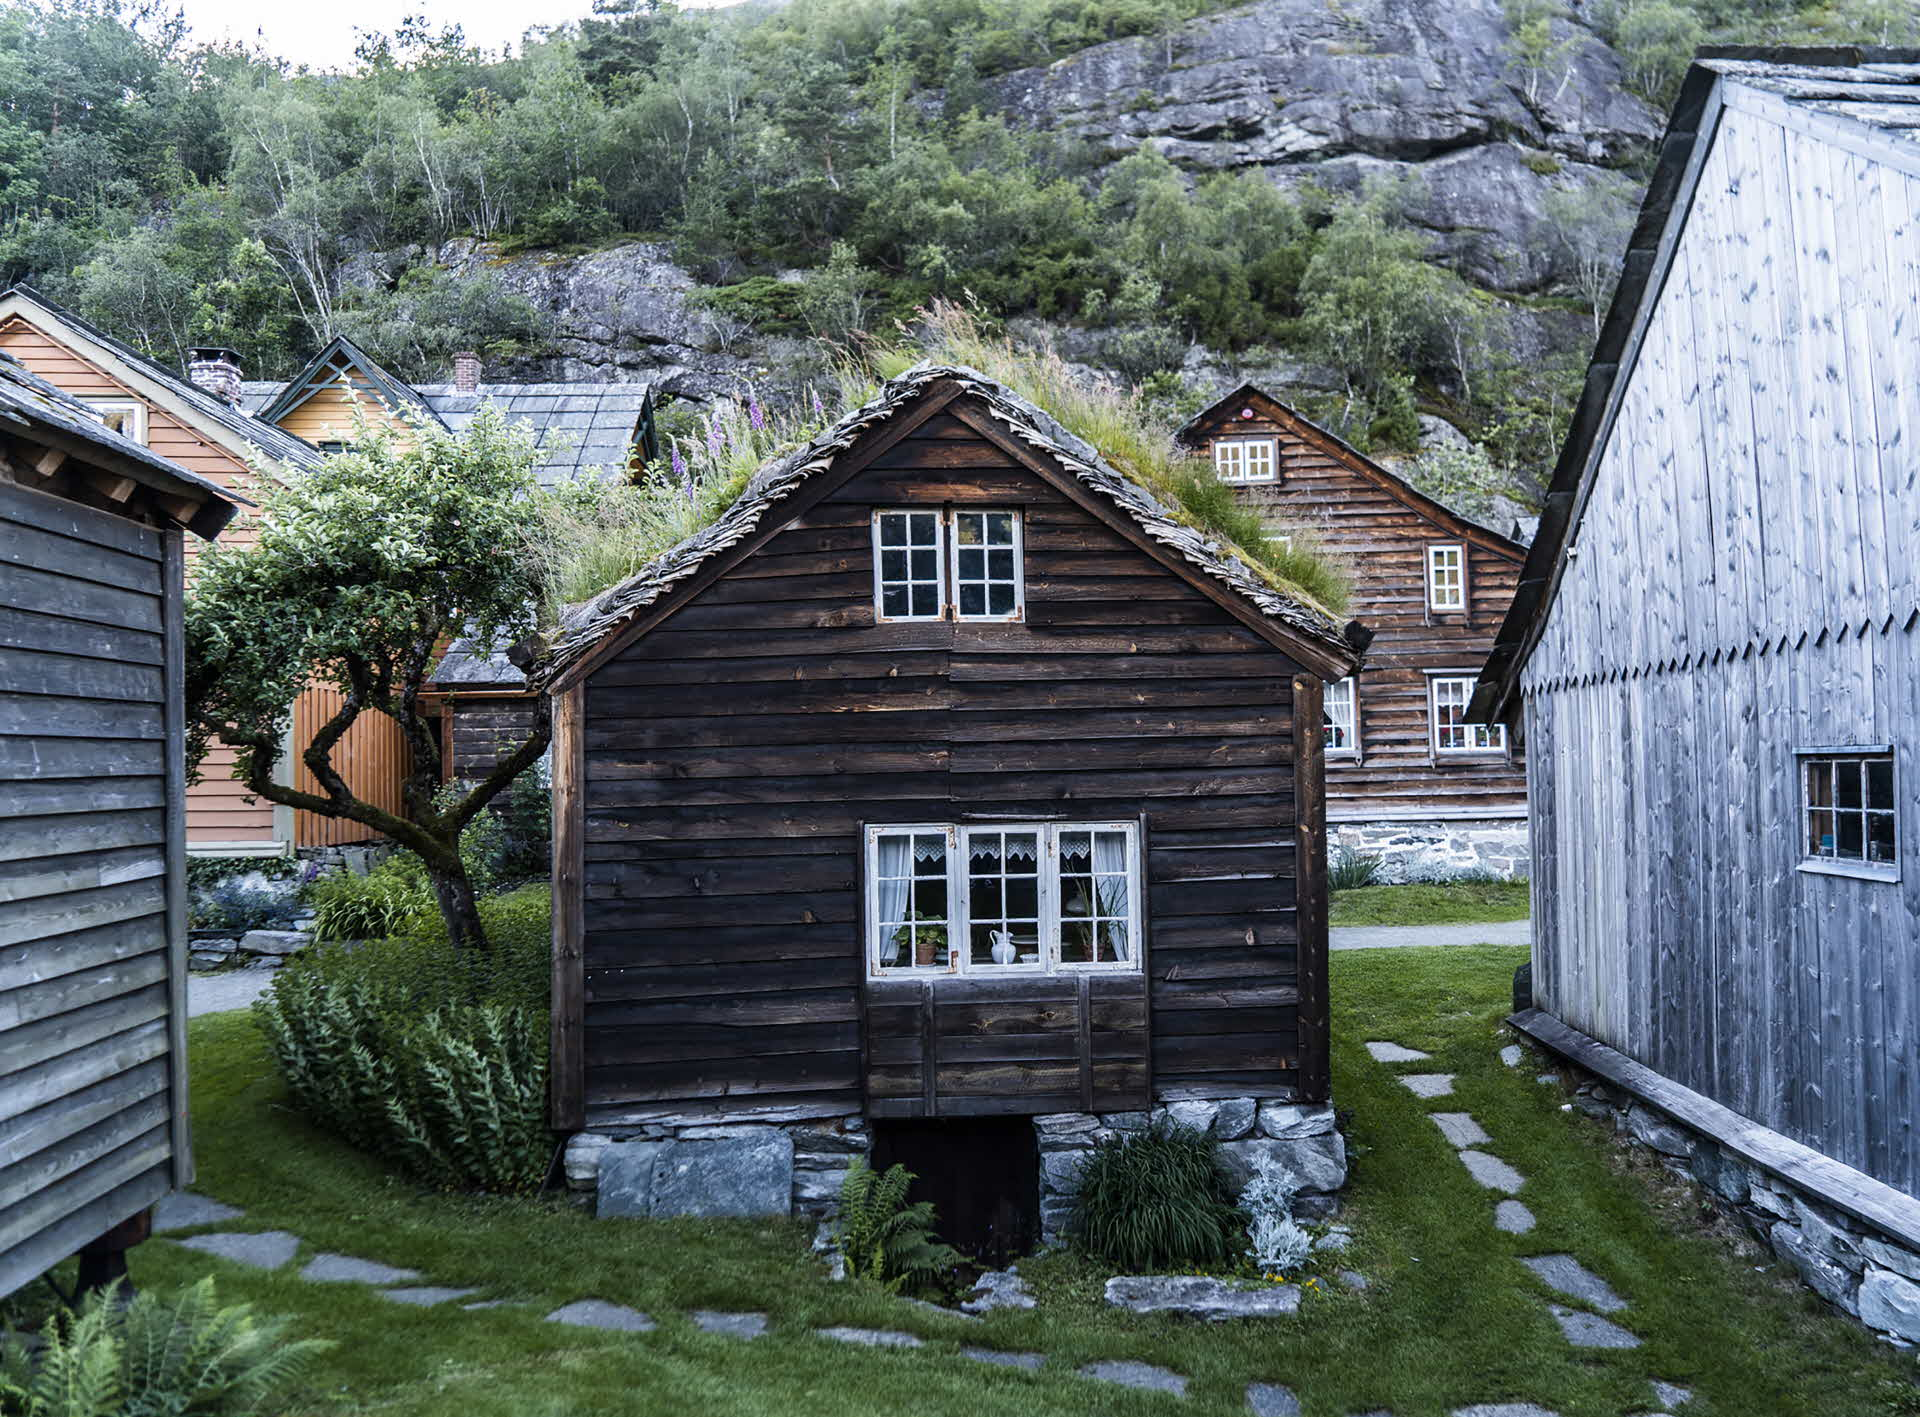 Small brown wooden house Agatunet Hardanger Norway early 1220 gras on roof resting on natural stones